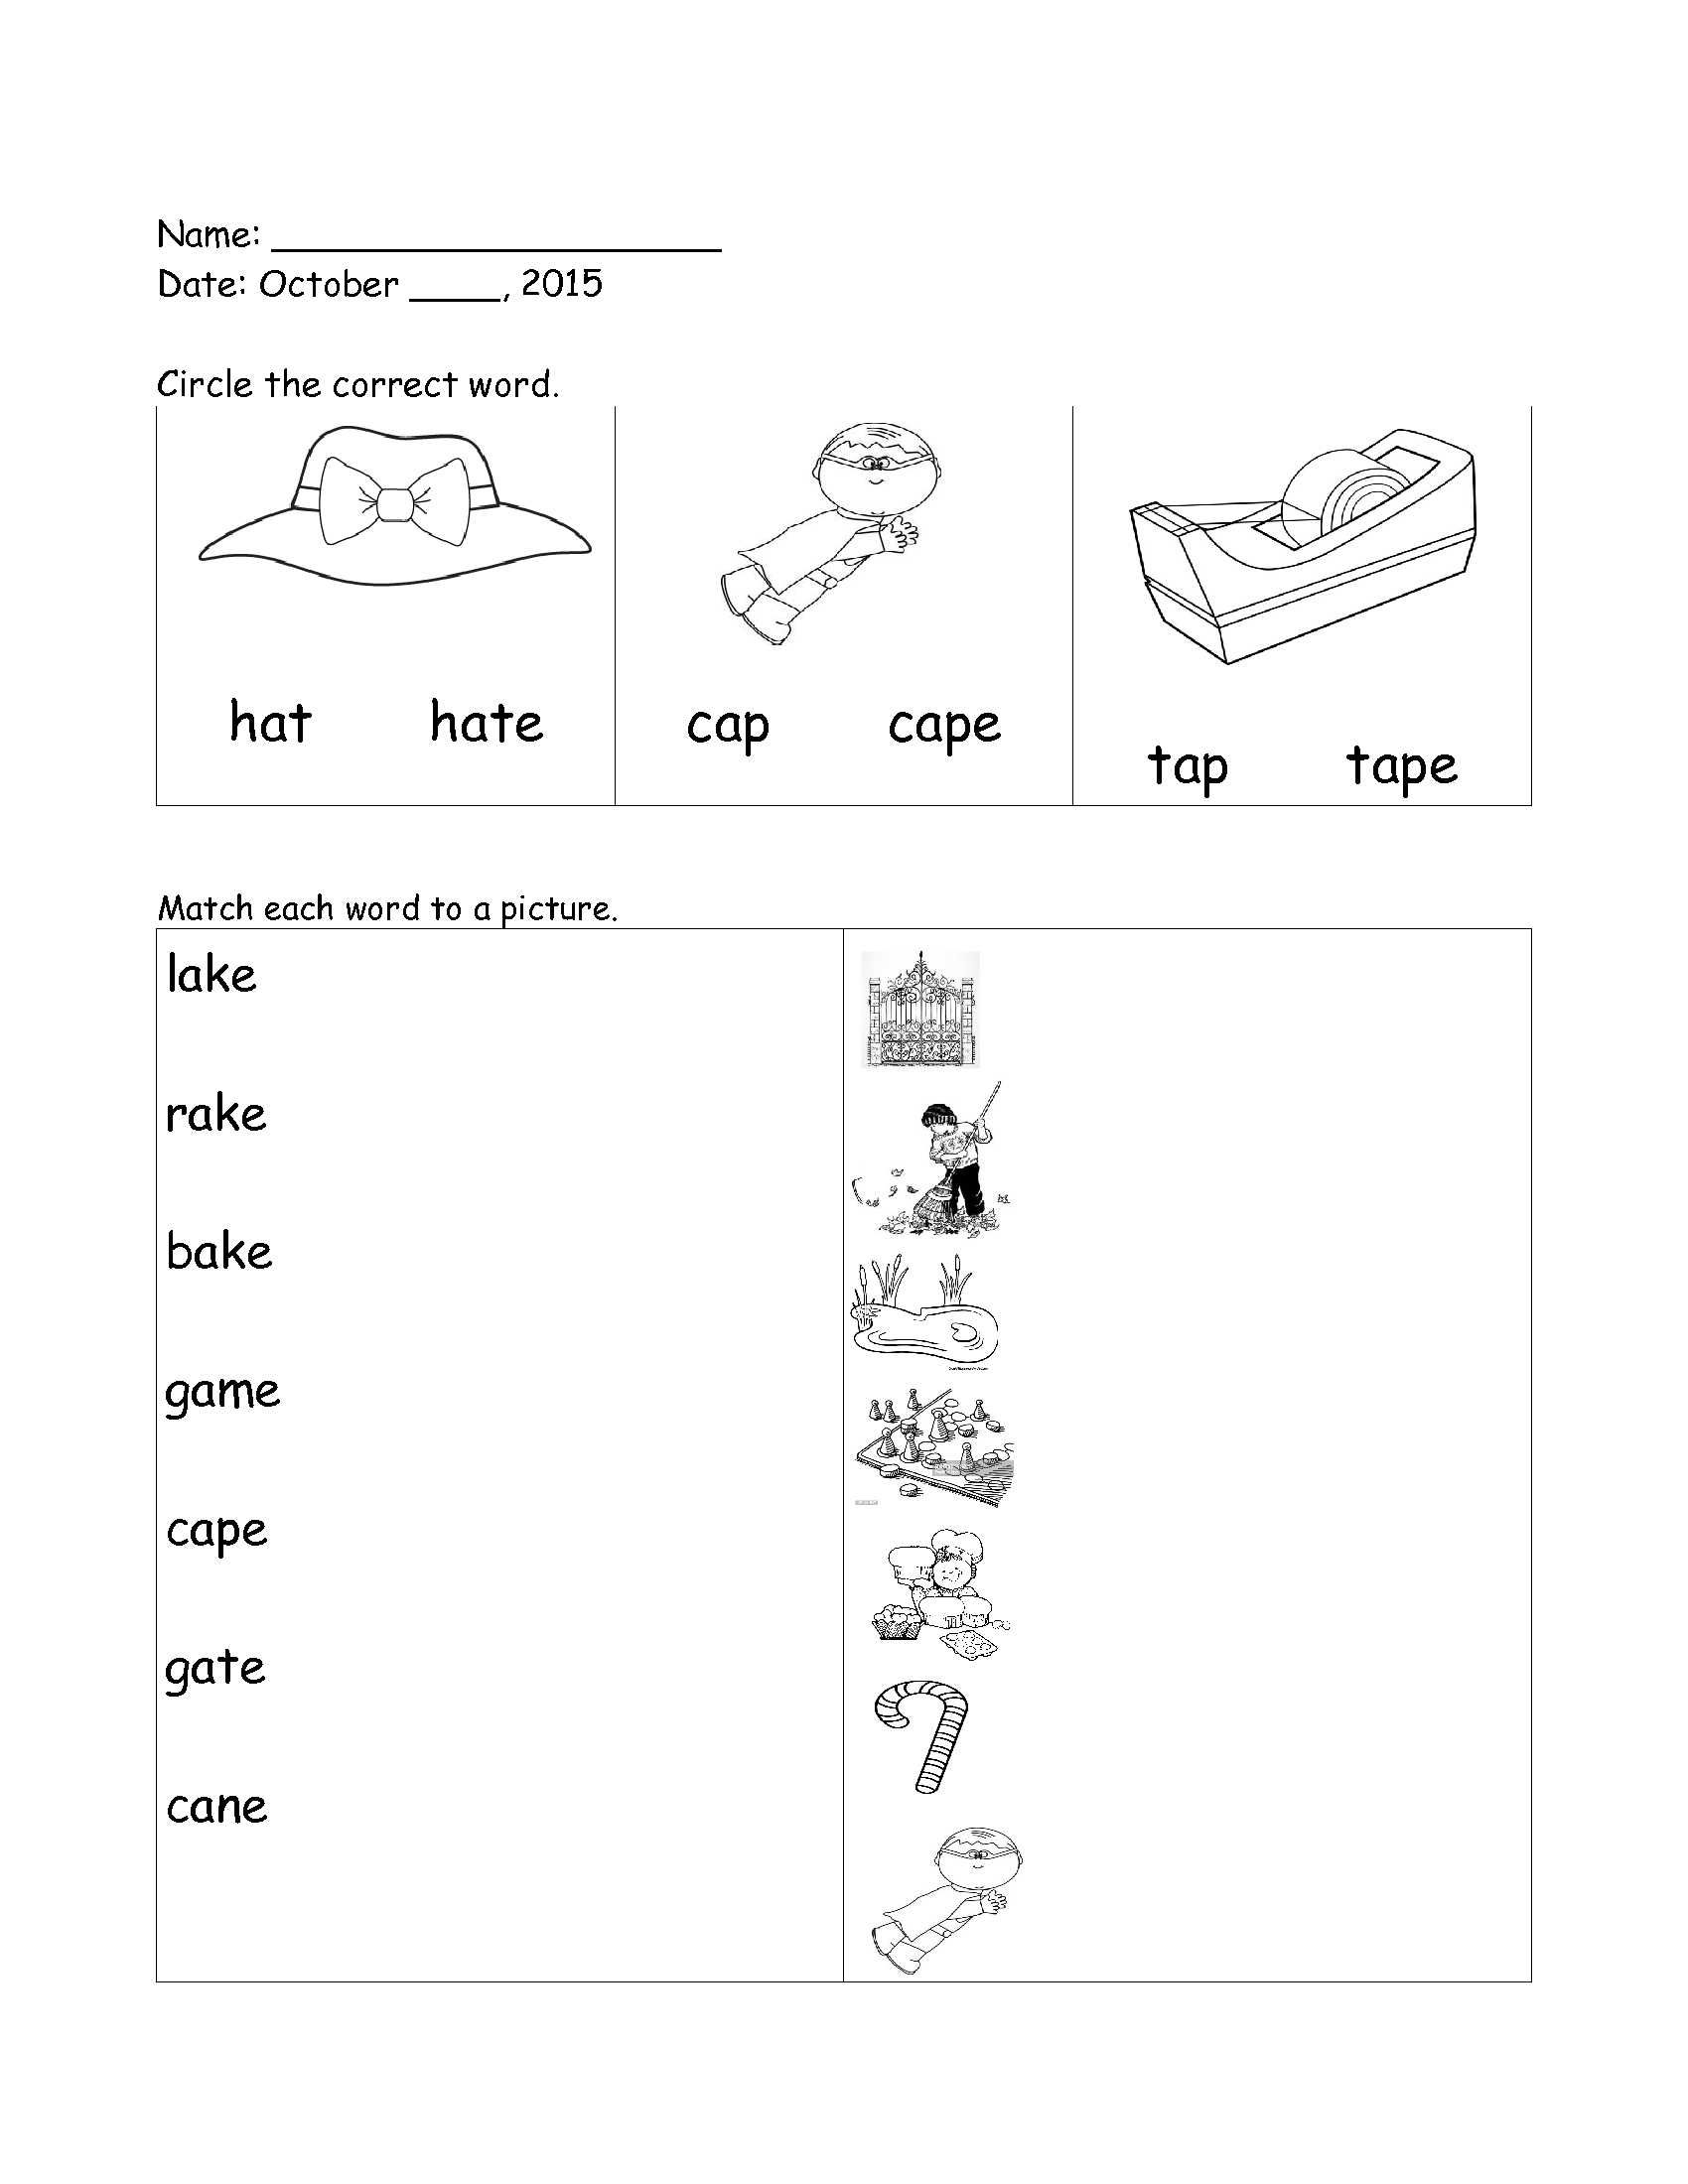 One Sided Limits Worksheet Pdf English Worksheet Grade  Long Vowels Long A For Full Sheet  Make Inferences Worksheet Excel with Us Map Worksheet Printable Excel English Worksheet Grade  Long Vowels Long A For Full Sheet Click Here Worksheets On Cells Excel